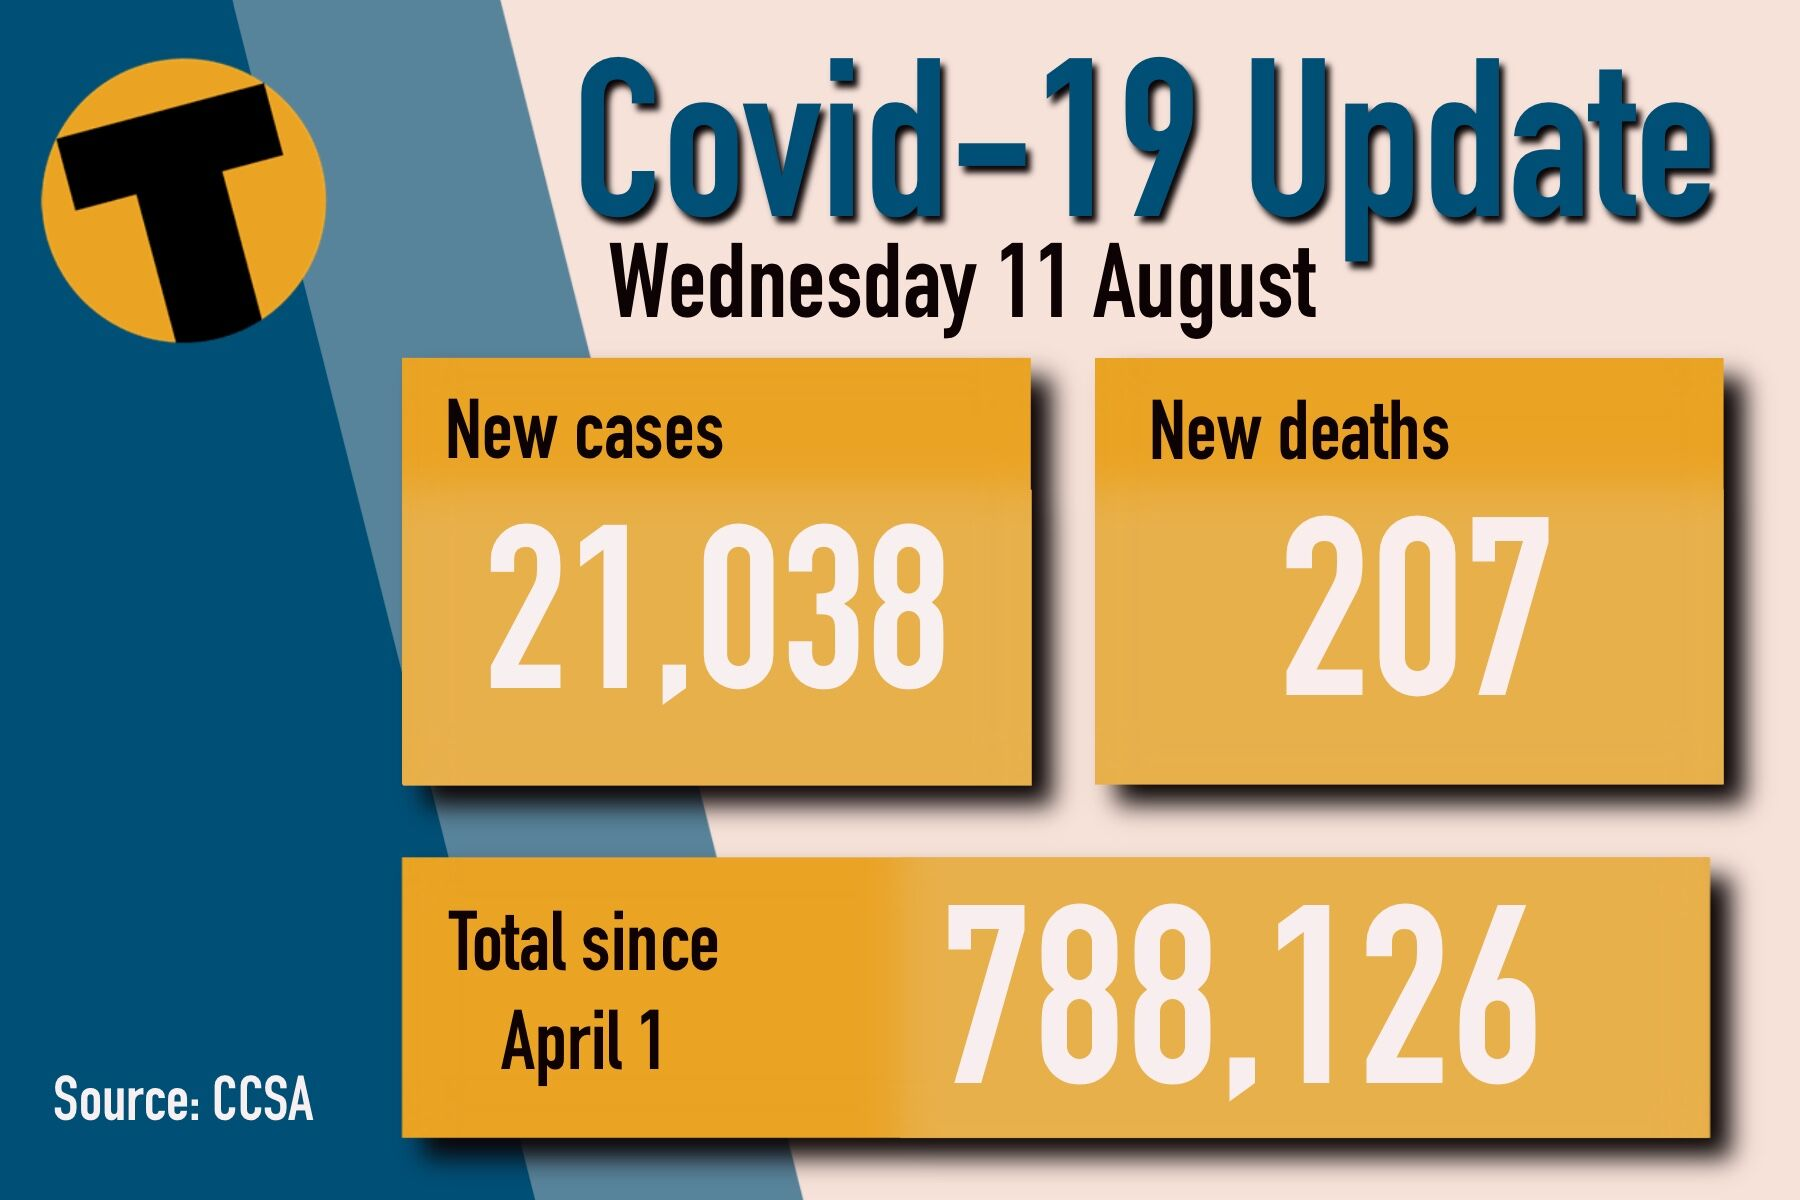 Wednesday Covid Update: 21,038 new cases and 207 deaths | News by Thaiger